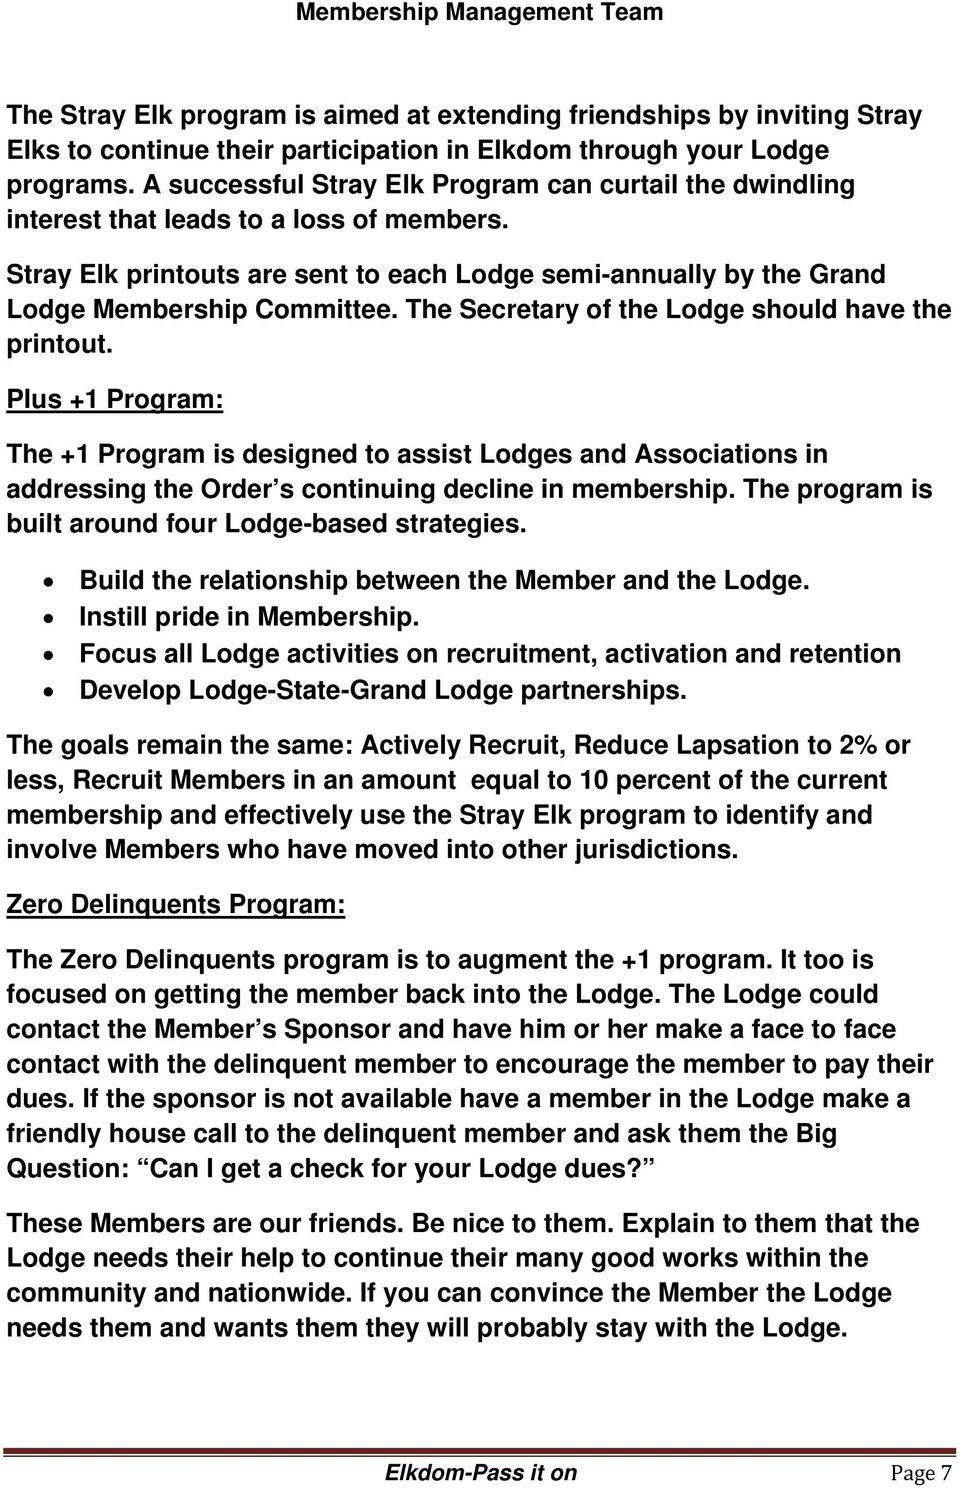 The Secretary of the Lodge should have the printout. Plus +1 Program: The +1 Program is designed to assist Lodges and Associations in addressing the Order s continuing decline in membership.